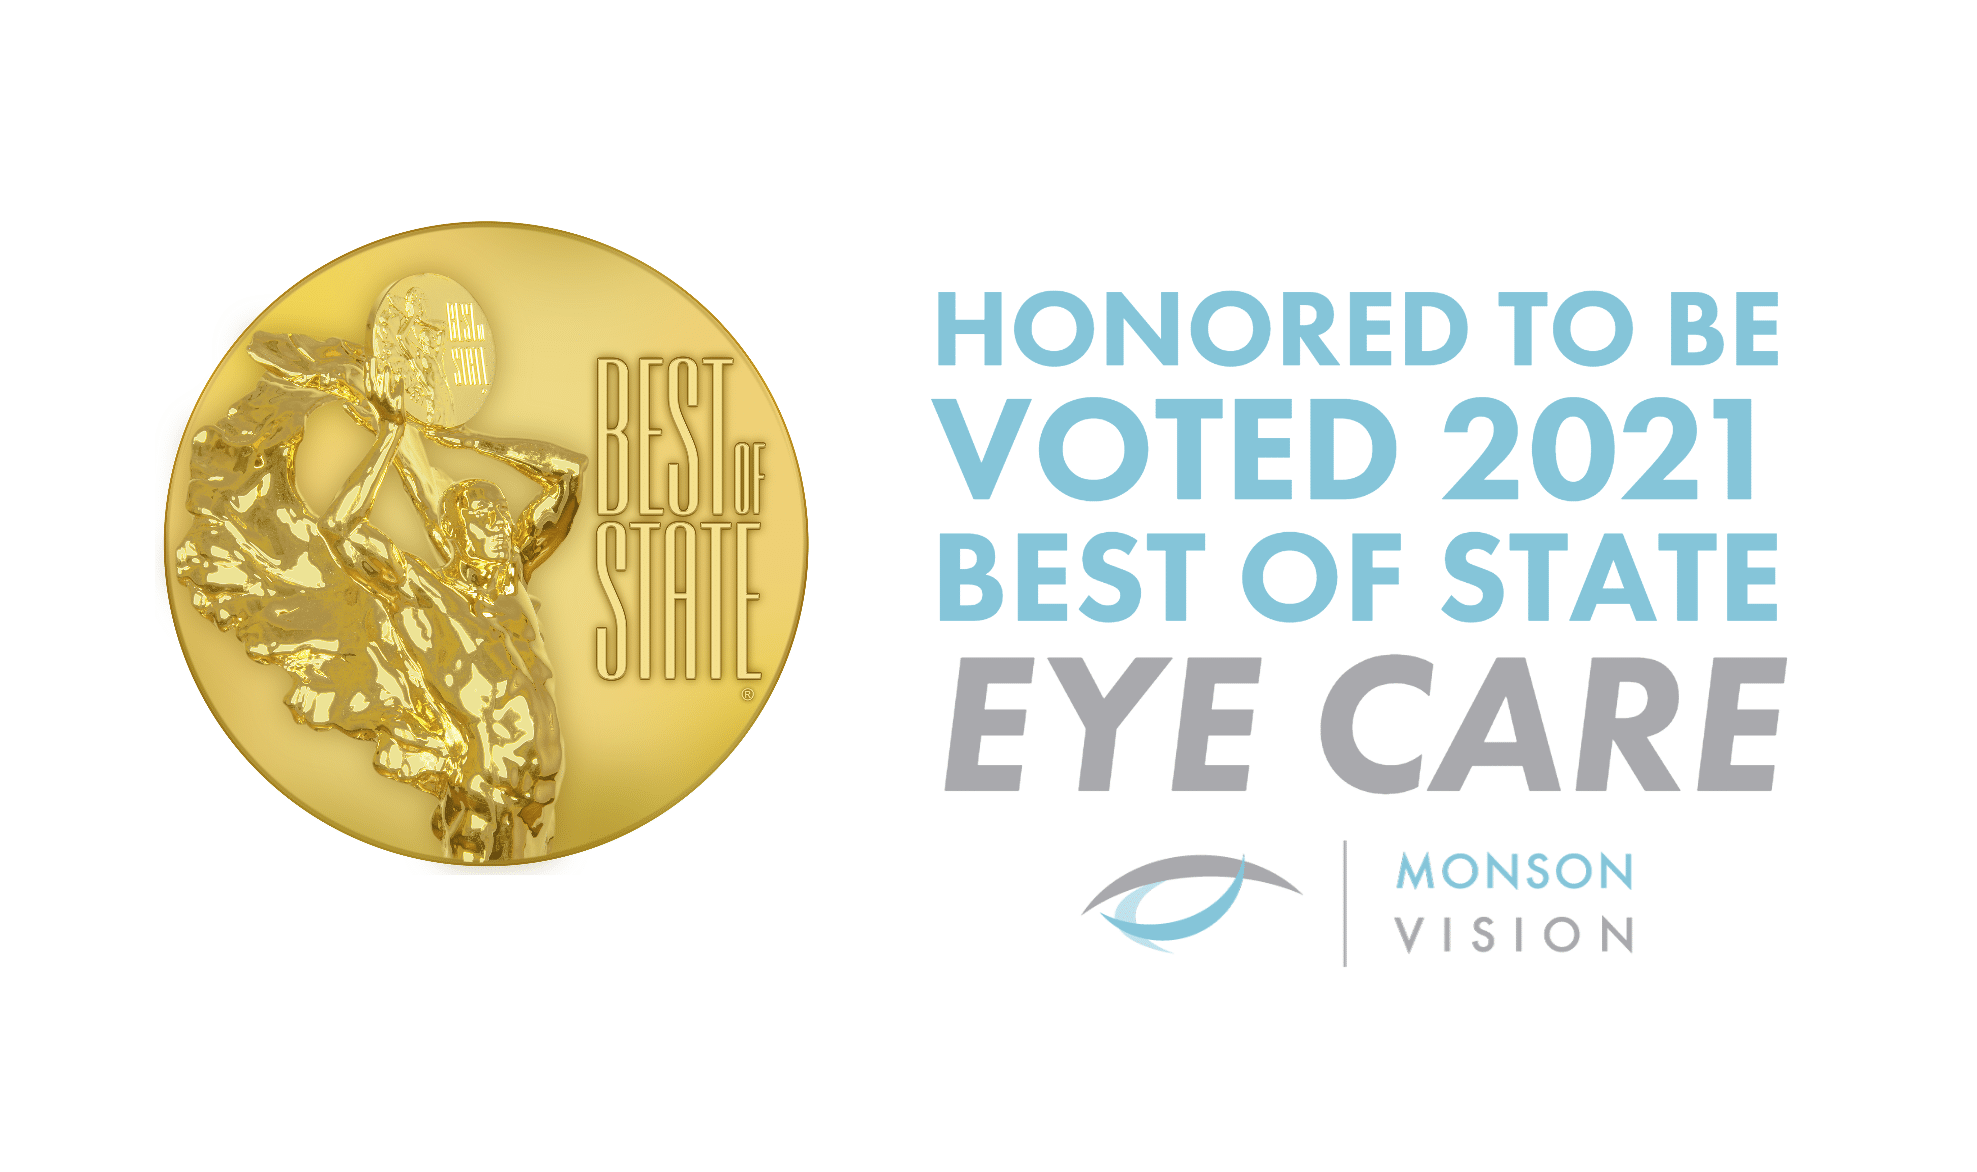 monson vision voted best of state eye care